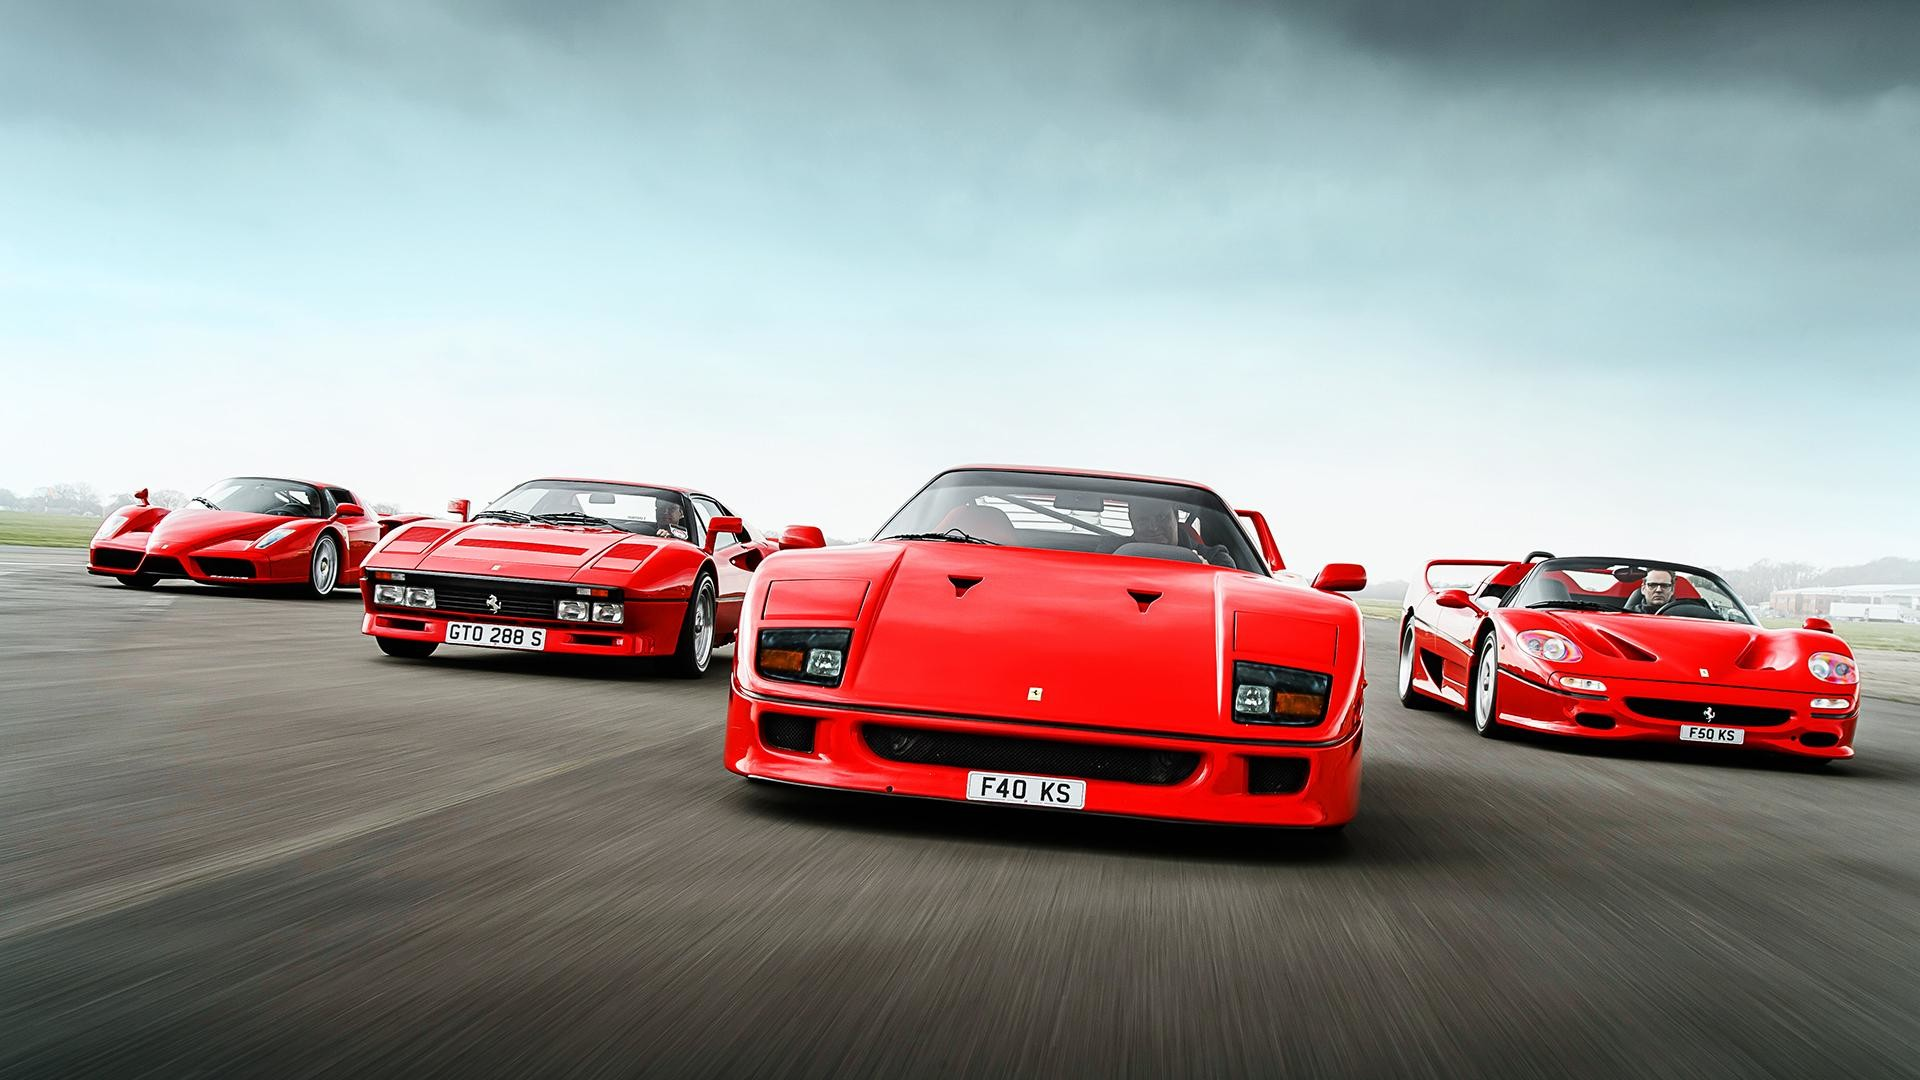 1920x1080 Awesome Ferrari Enzo Pictures | Ferrari Enzo Wallpapers